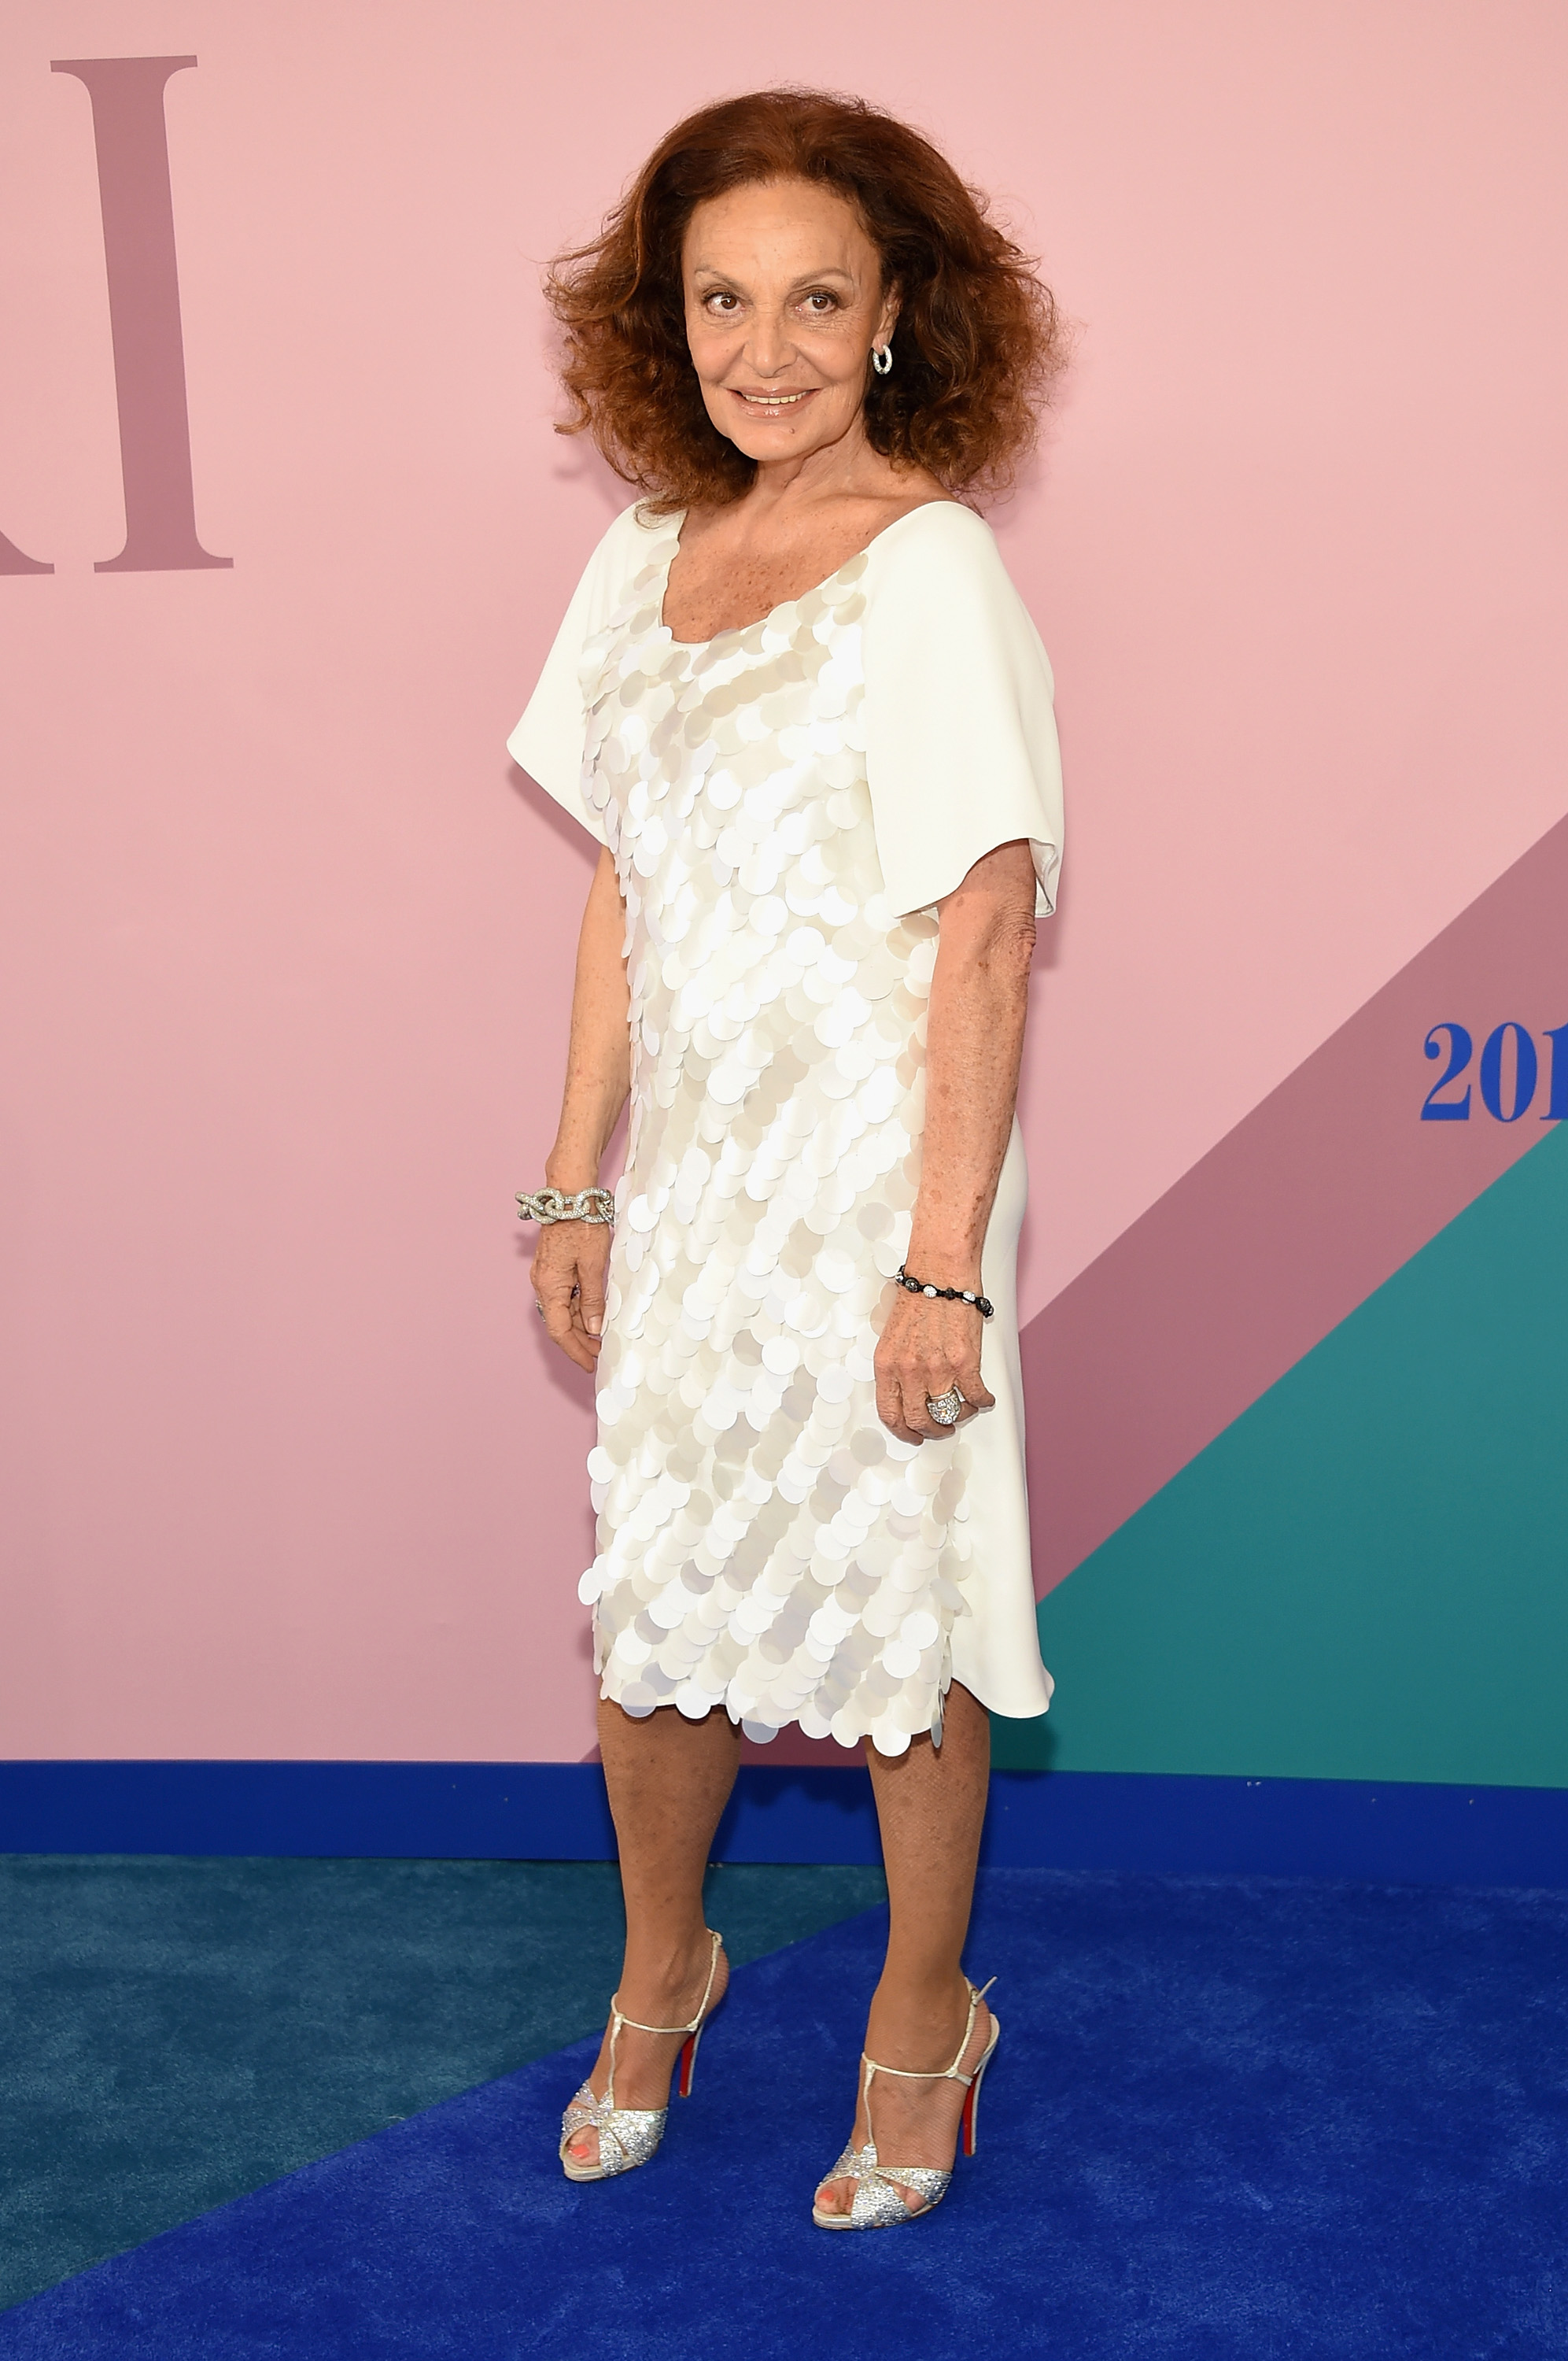 NEW YORK, NY - JUNE 05:  Diane von Furstenberg attends the 2017 CFDA Fashion Awards at Hammerstein Ballroom on June 5, 2017 in New York City.  (Photo by Dimitrios Kambouris/Getty Images)